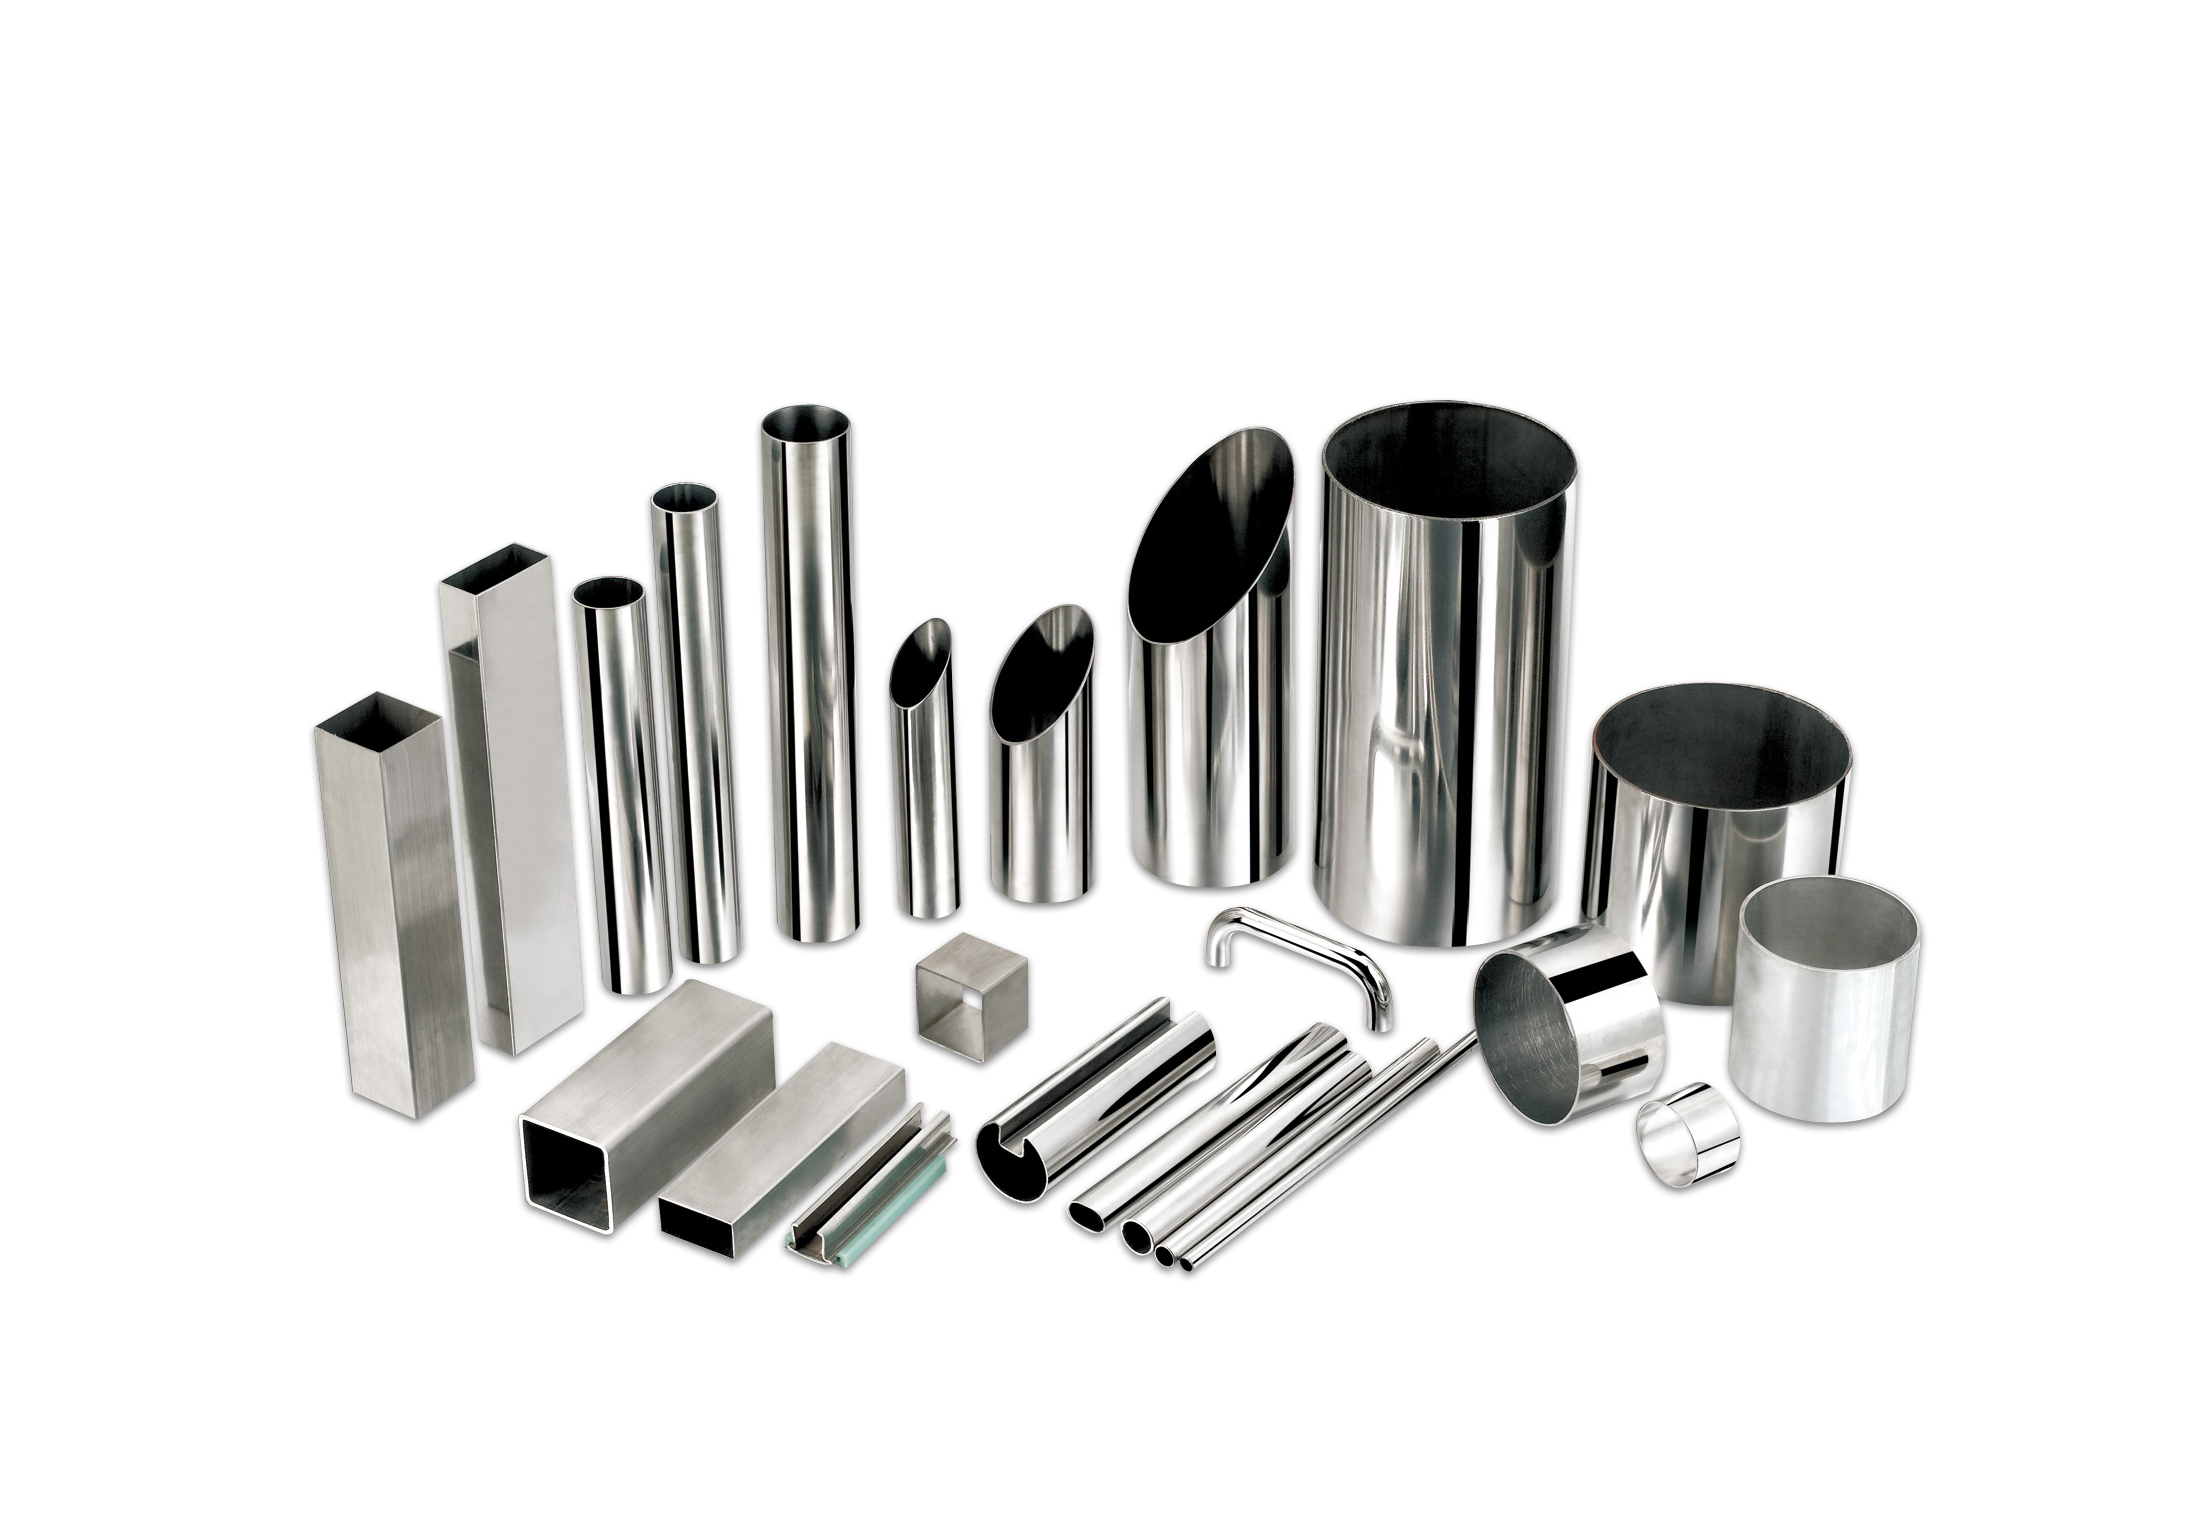 Stainless Steel Machanical and Structural tubing